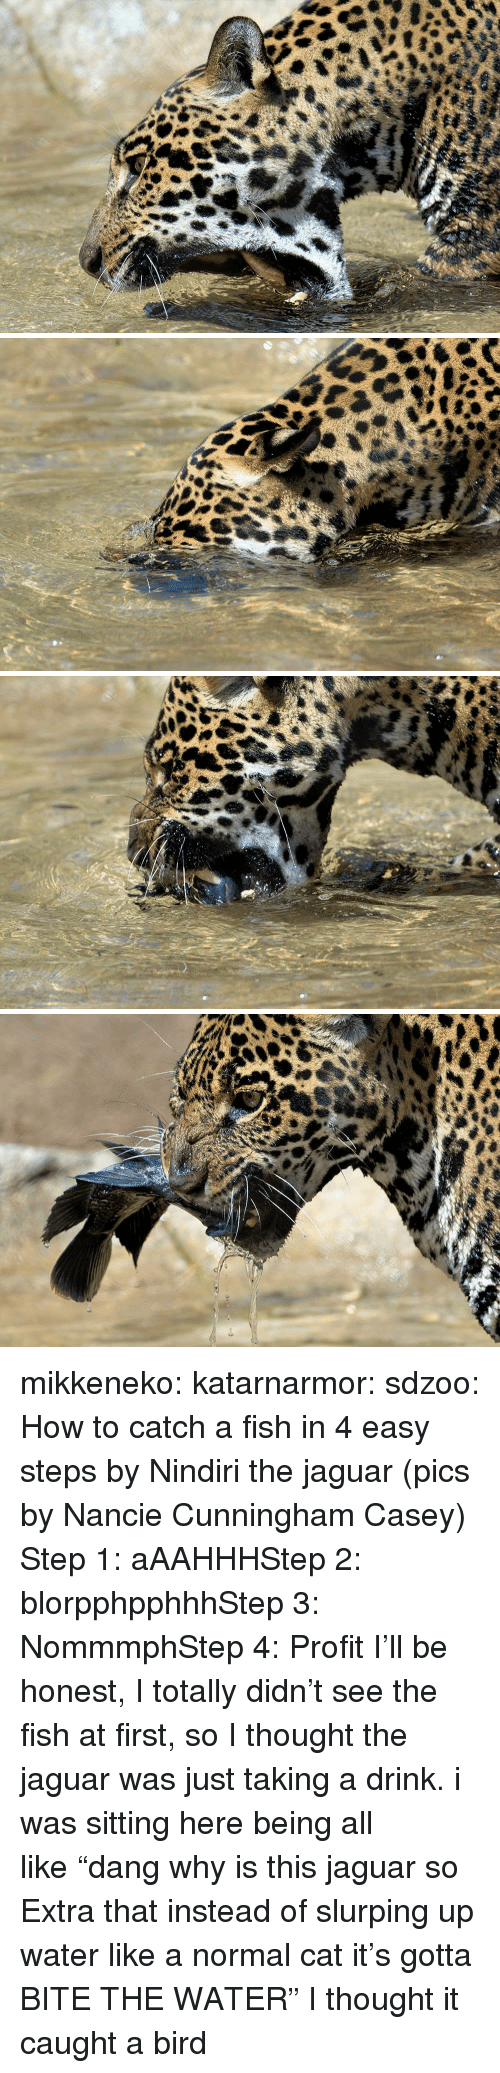 """Target, Tumblr, and Blog: mikkeneko:  katarnarmor:  sdzoo: How to catch a fish in 4 easy steps by Nindiri the jaguar (pics by Nancie Cunningham Casey)  Step 1: aAAHHHStep 2: blorpphpphhhStep 3: NommmphStep 4: Profit  I'll be honest, I totally didn't see the fish at first, so I thought the jaguar was just taking a drink. i was sitting here being all like""""dang why is this jaguar so Extra that instead of slurping up water like a normal cat it's gotta BITE THE WATER""""   I thought it caught a bird"""